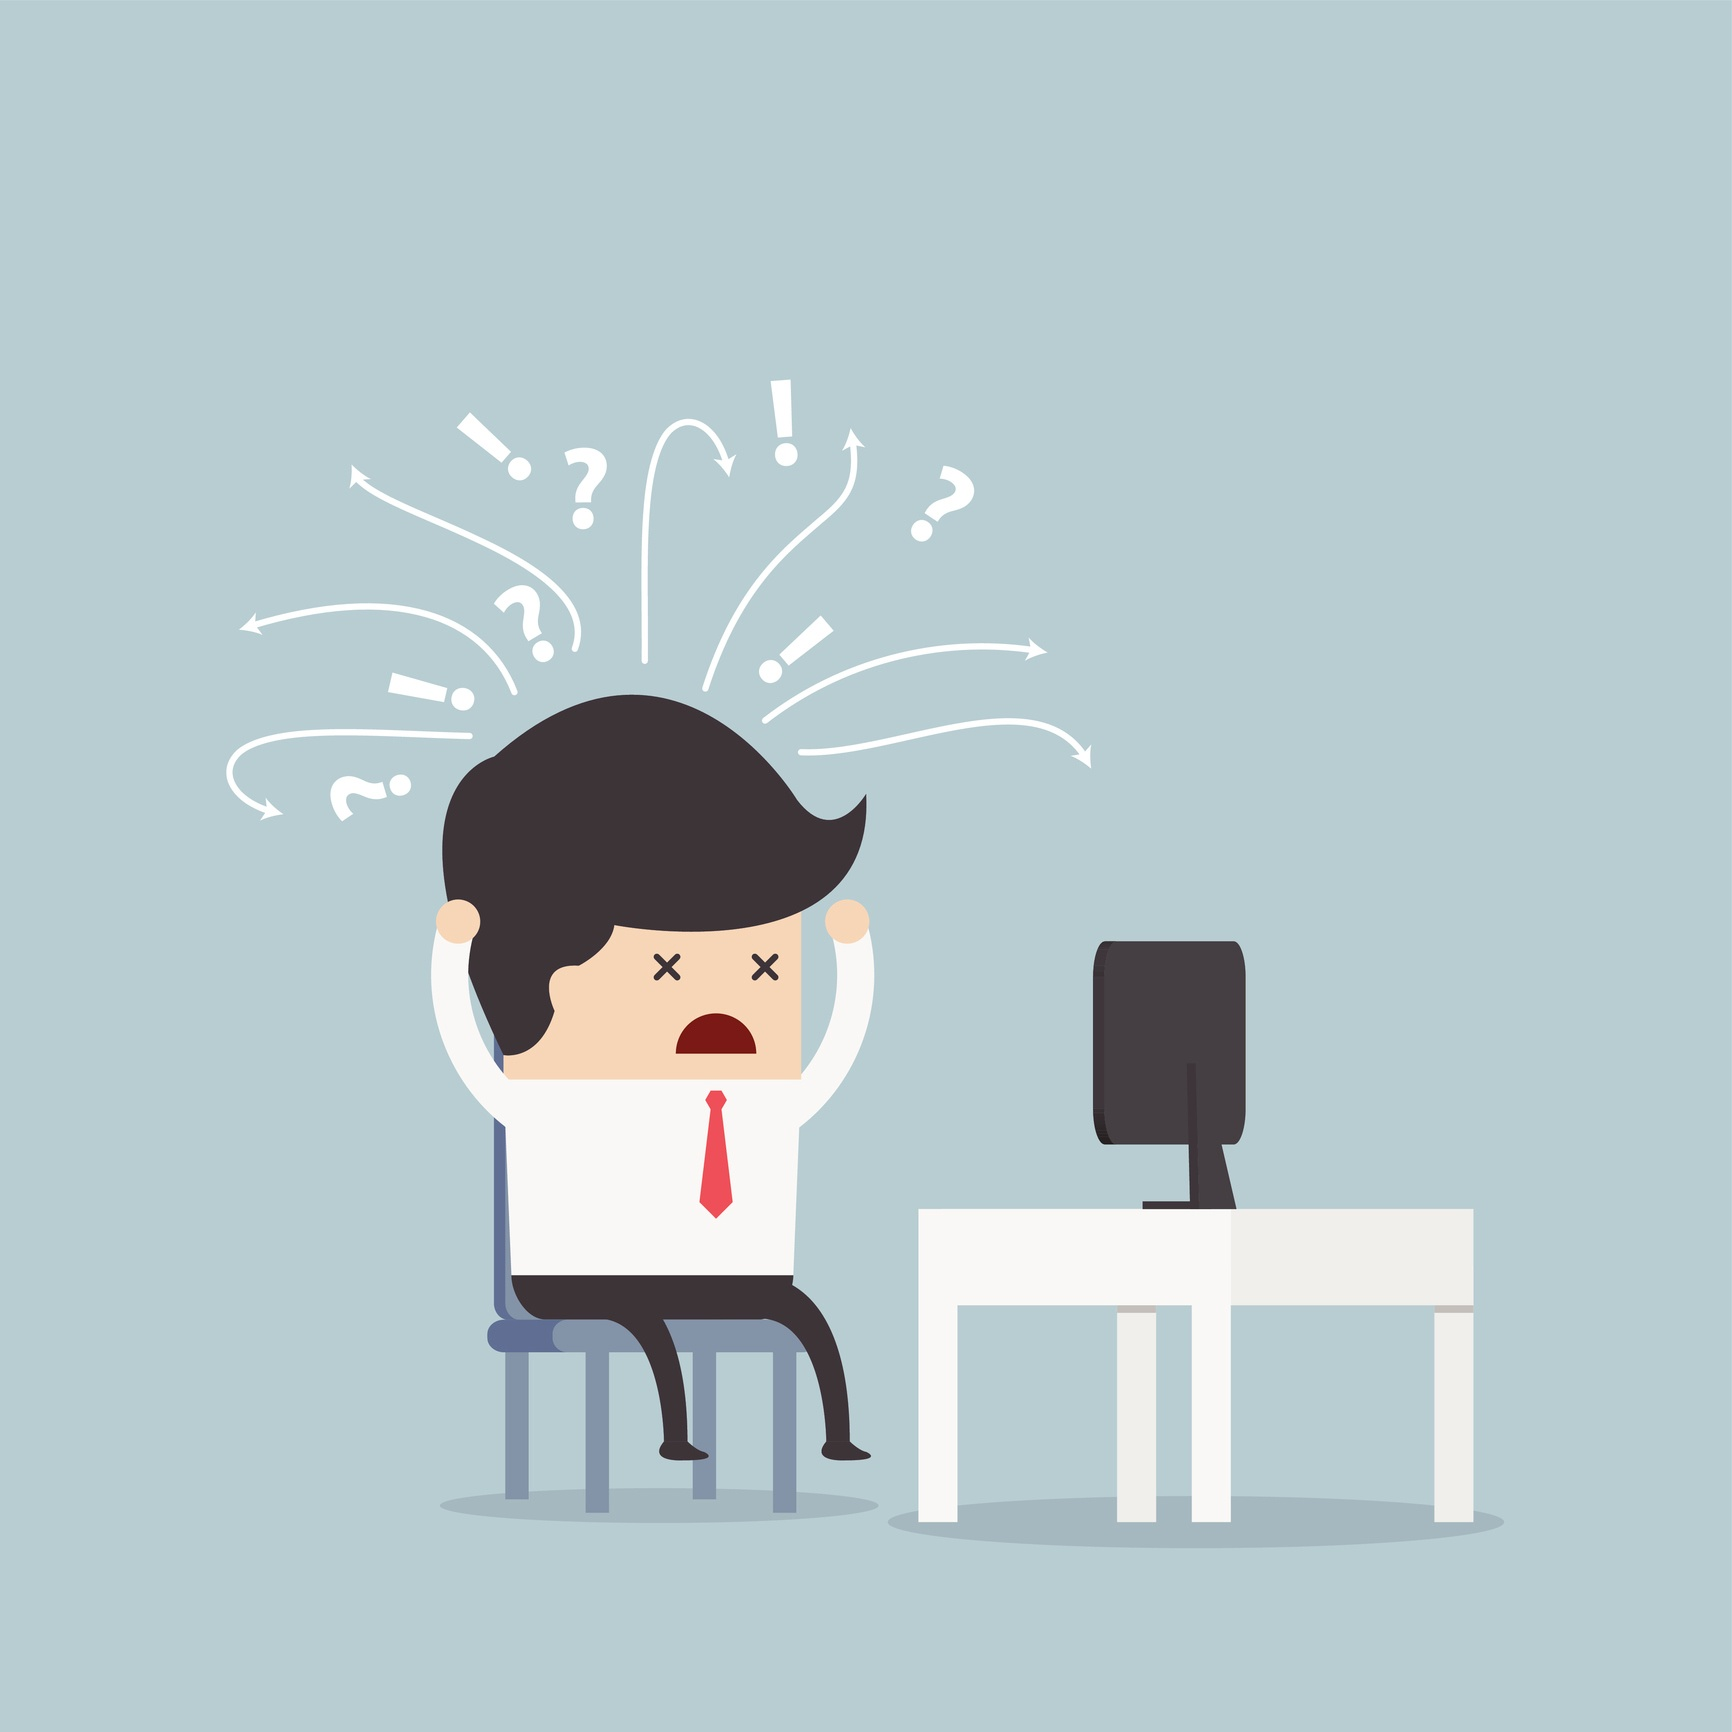 3 tips to focus on your optometric practice and avoid burn-out.